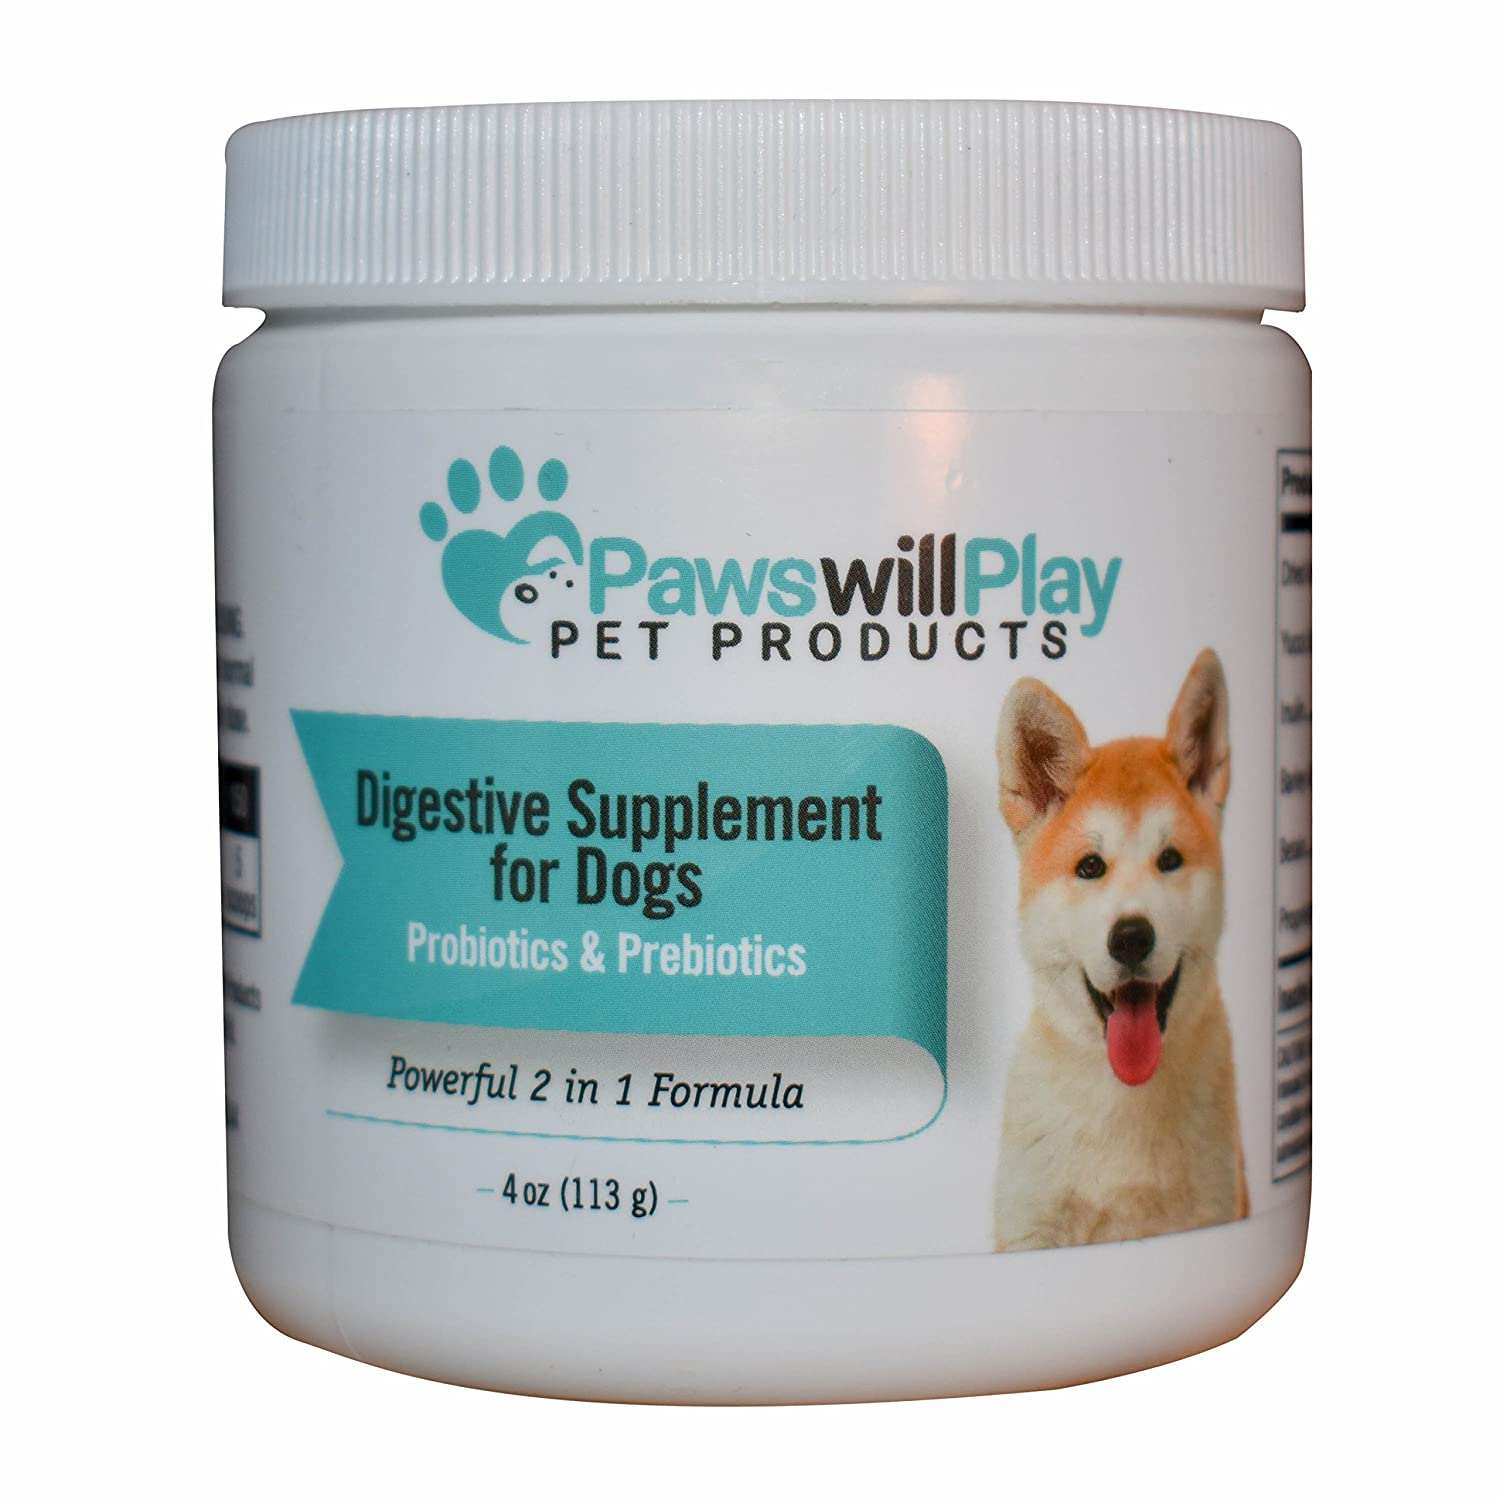 100% Naturally Derived Probiotic for Dogs with Added Prebiotic - 2 in 1 Dog Digestive Supplement Powder to Help Pet's Digestion and Itchy Skin - Made in the USA